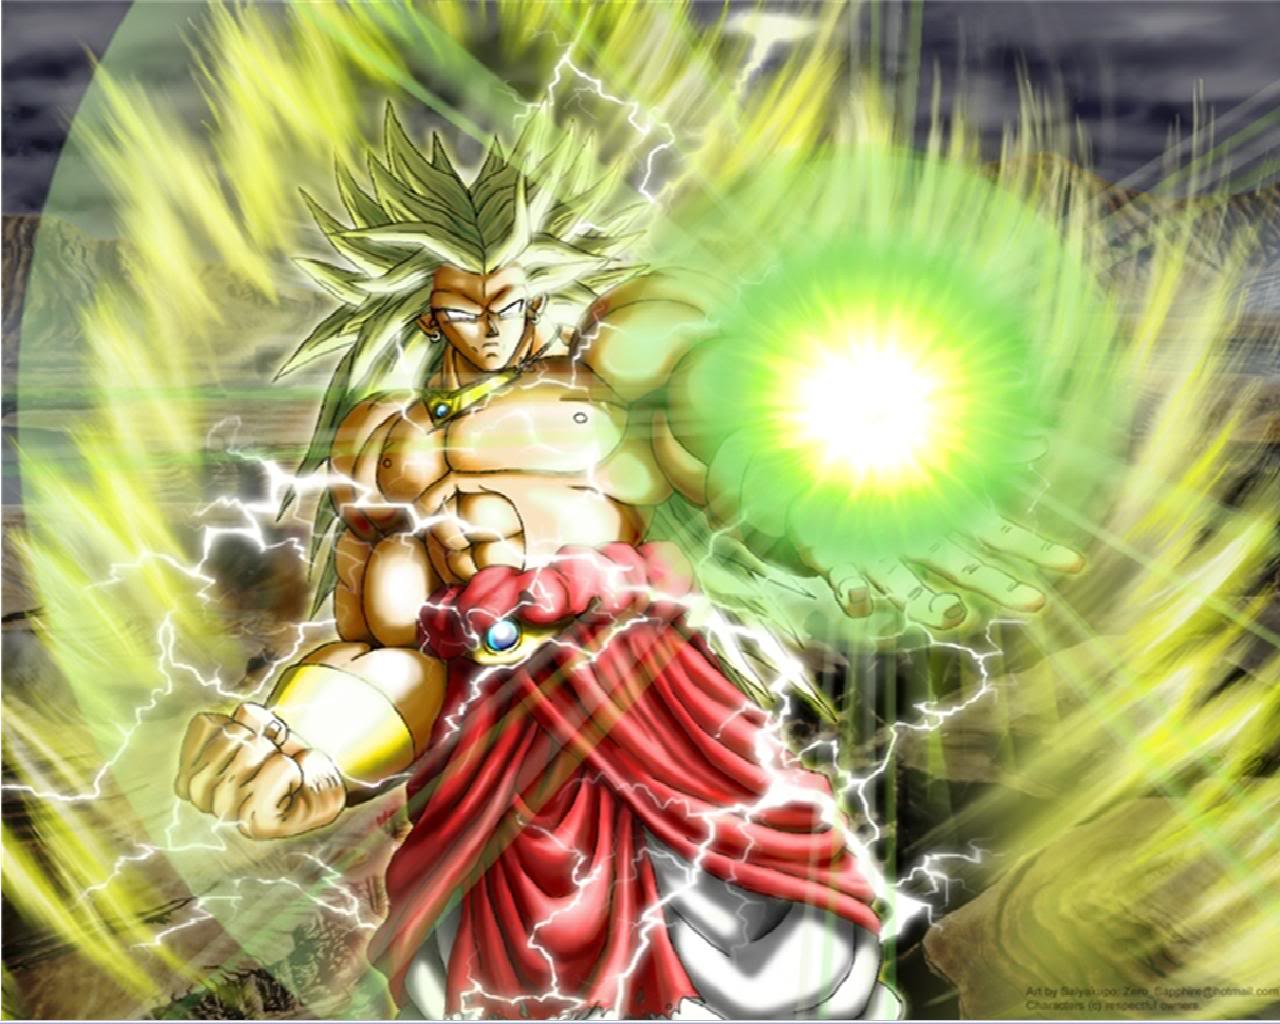 Broly Legendary Super Saiyan Wallpapers Hd Wallpaper Cave